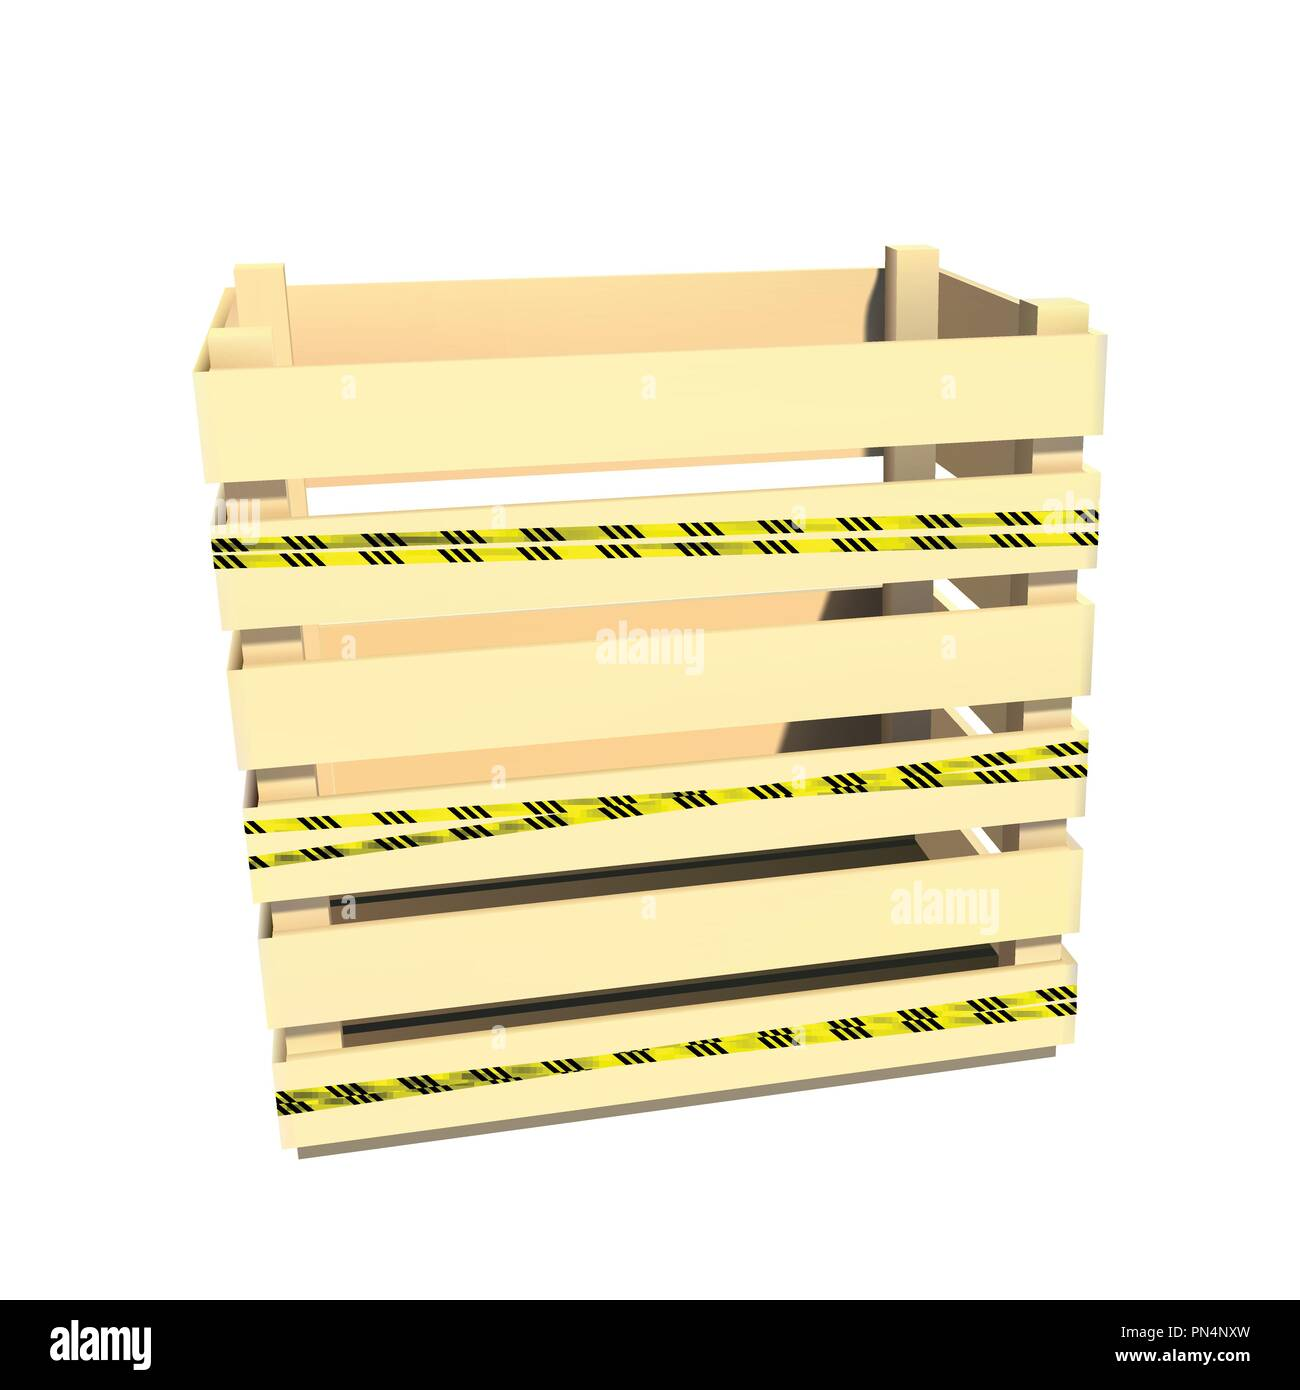 Physical hazards. Caution tape. Wooden container. Box for storage and transportation. Vector illustration. - Stock Image